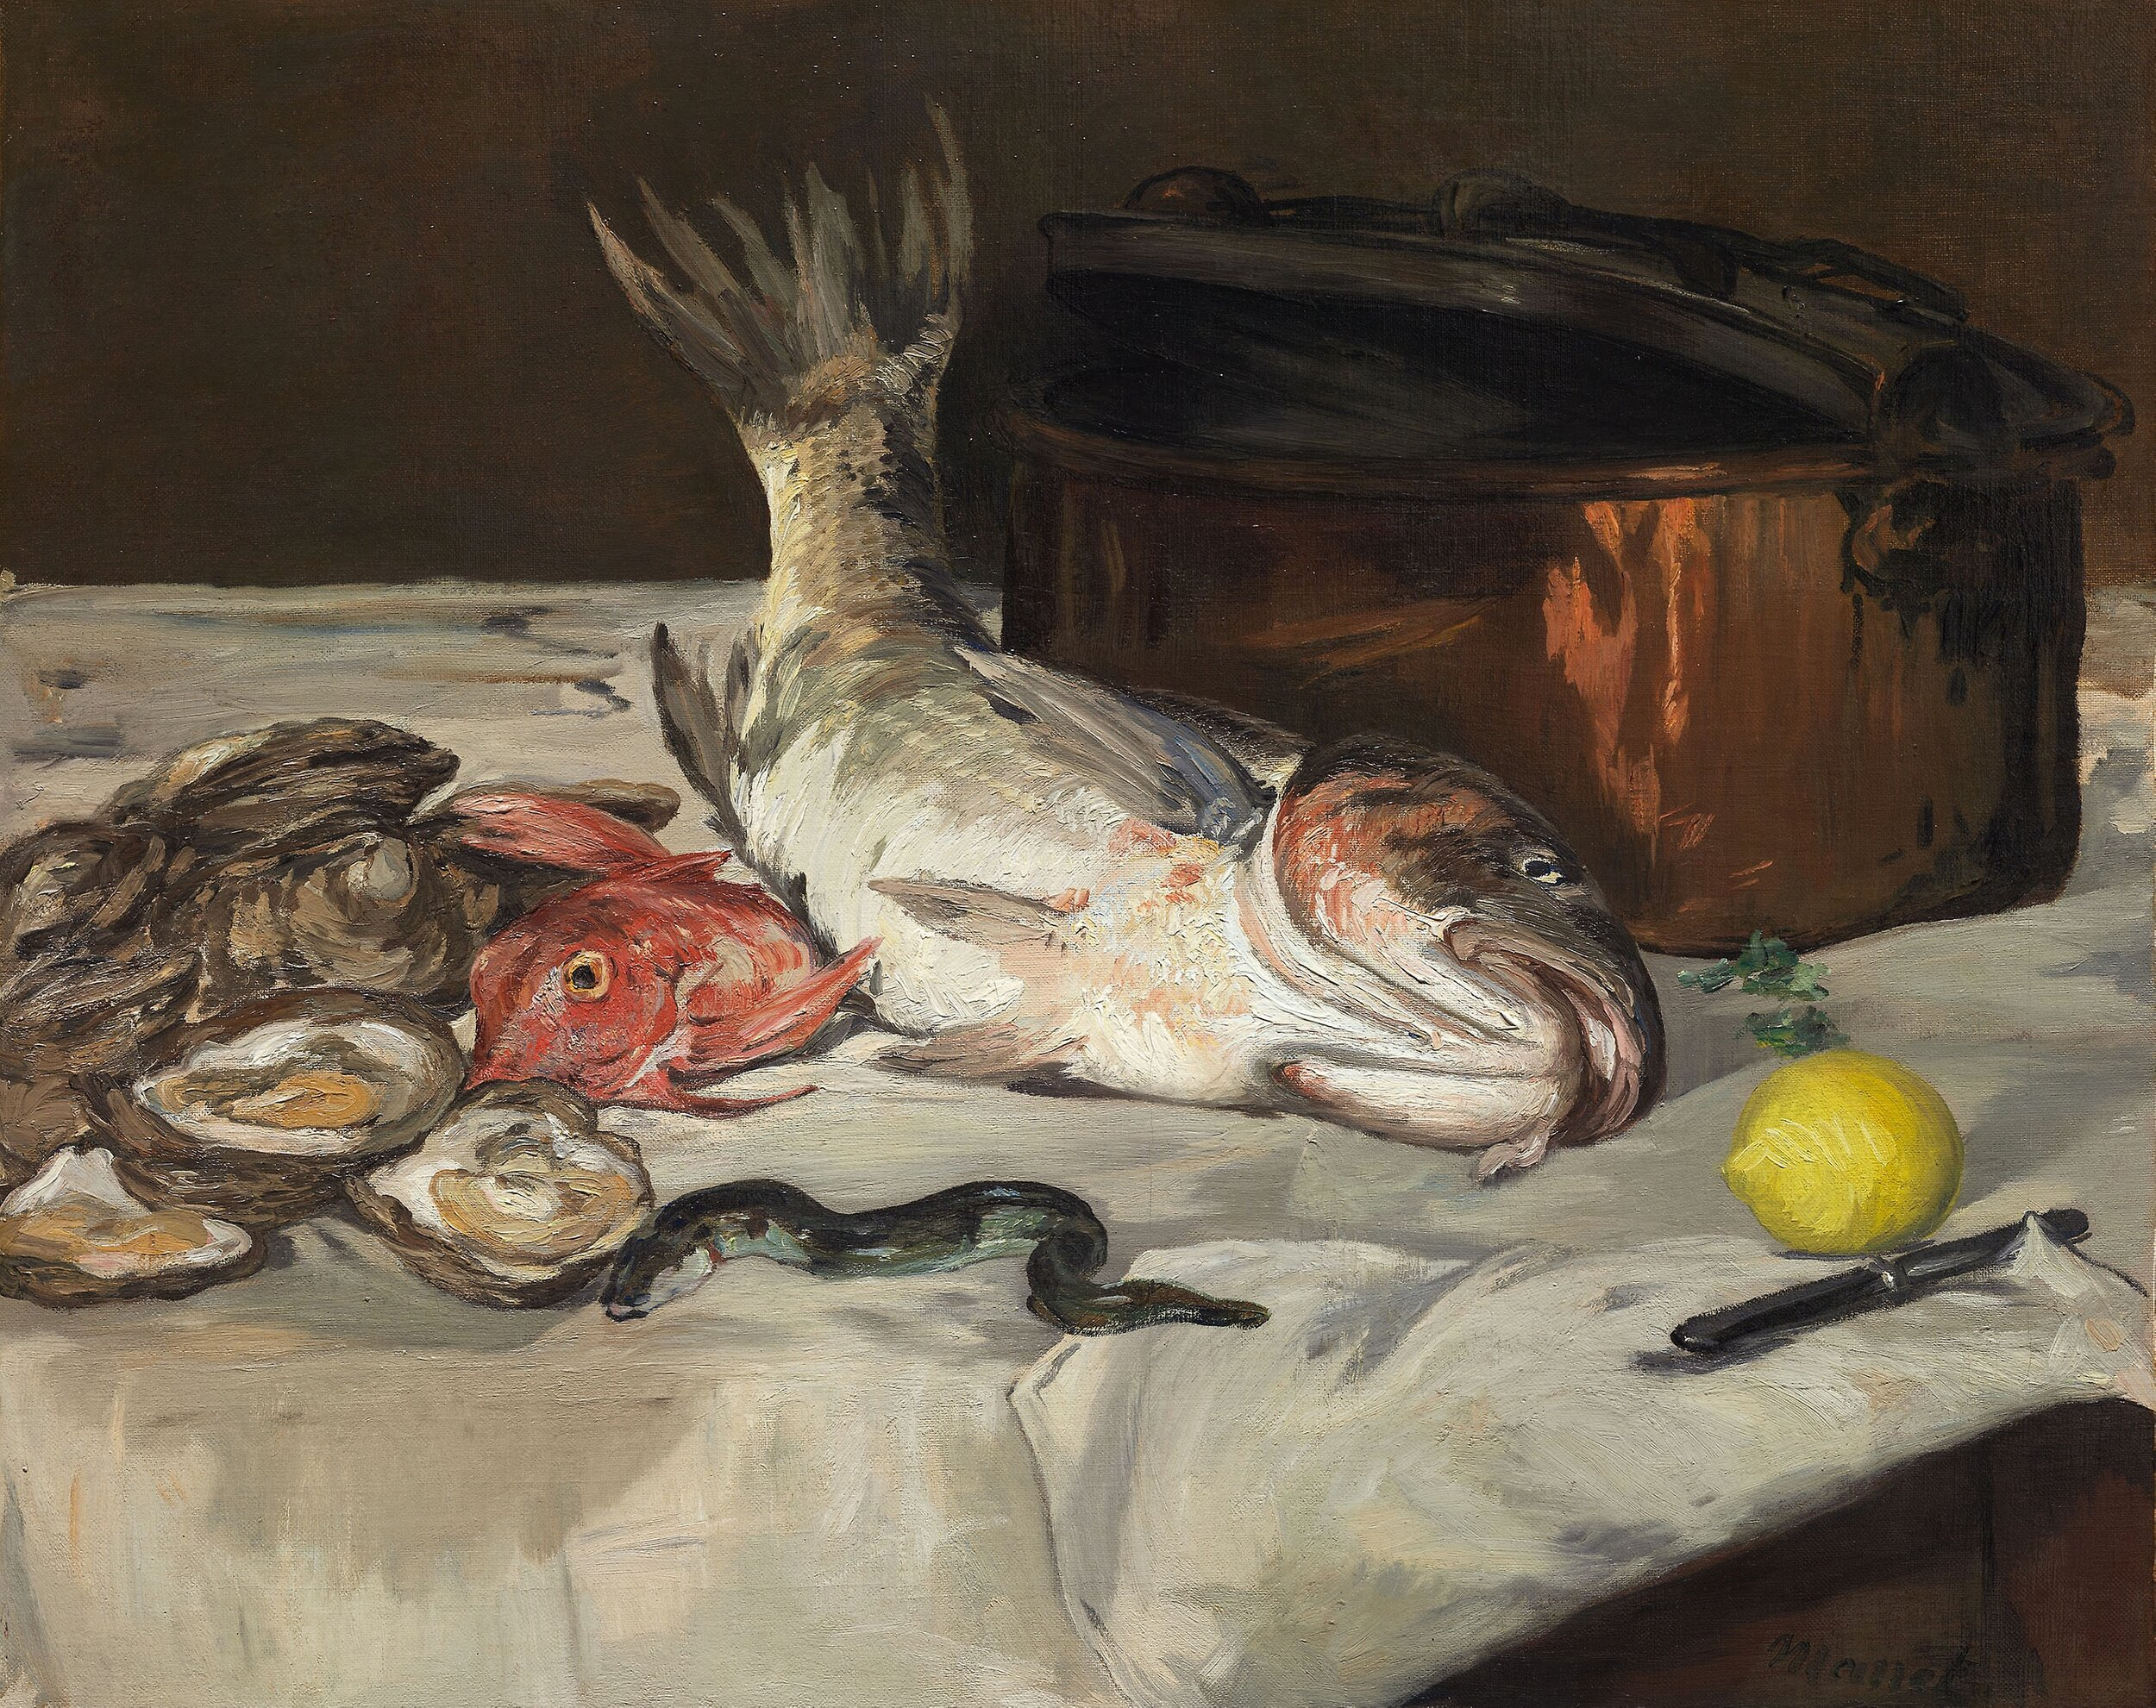 Painting of various fish by Édouard Manet,  https://www.artic.edu/artworks/44892/fish-still-life